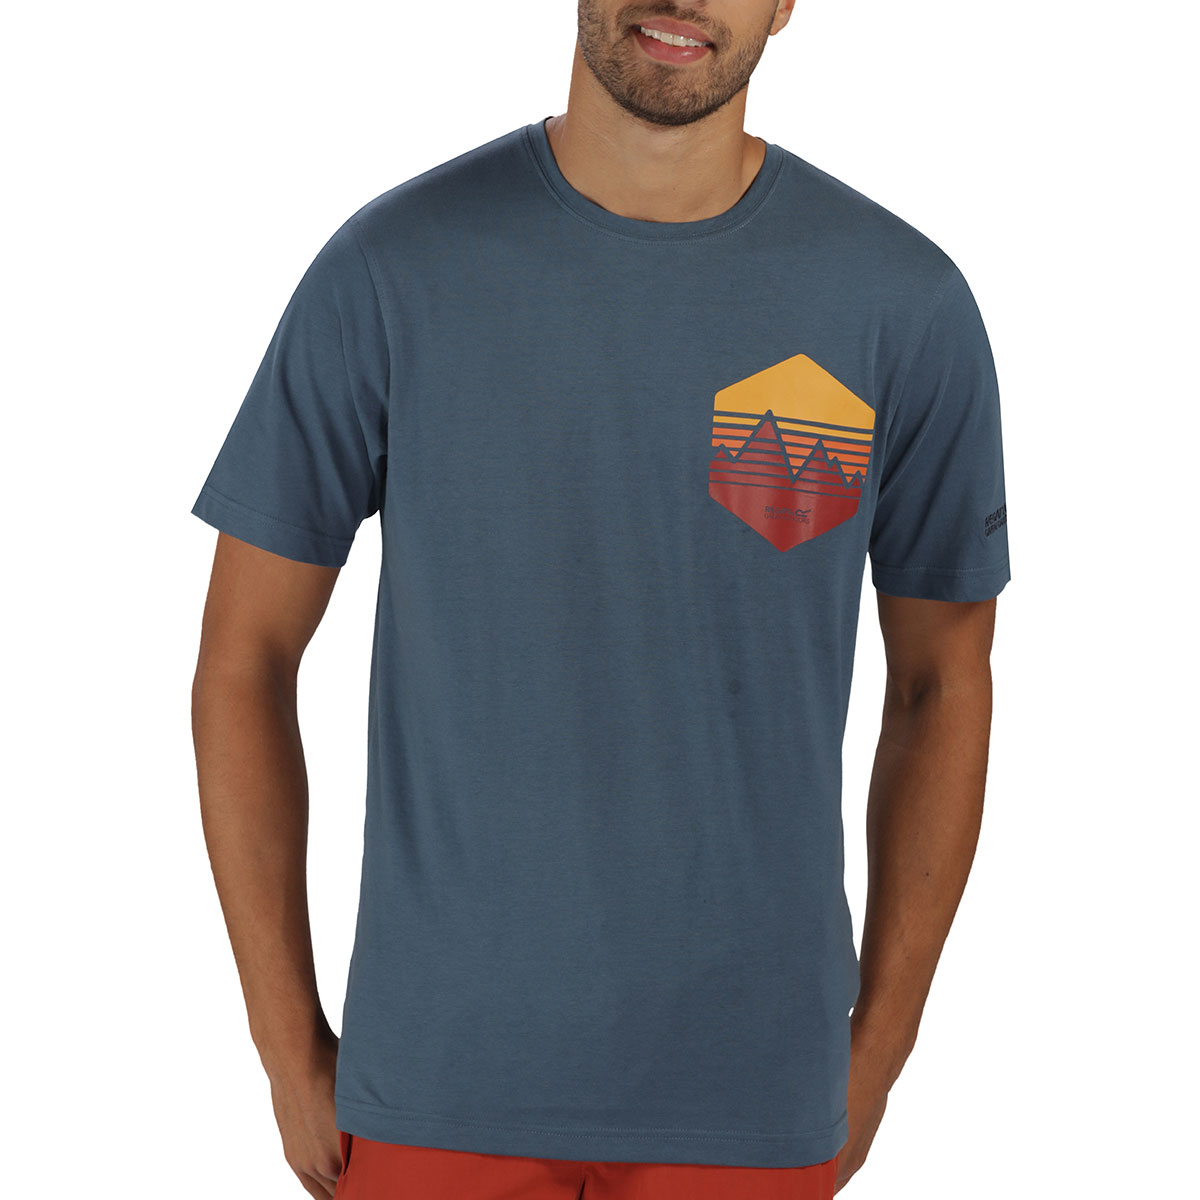 Regatta Mens Cline Coolweave Lightweight Graphic Tee T-Shirt 52% OFF RRP;  Picture 2 of 3 ...